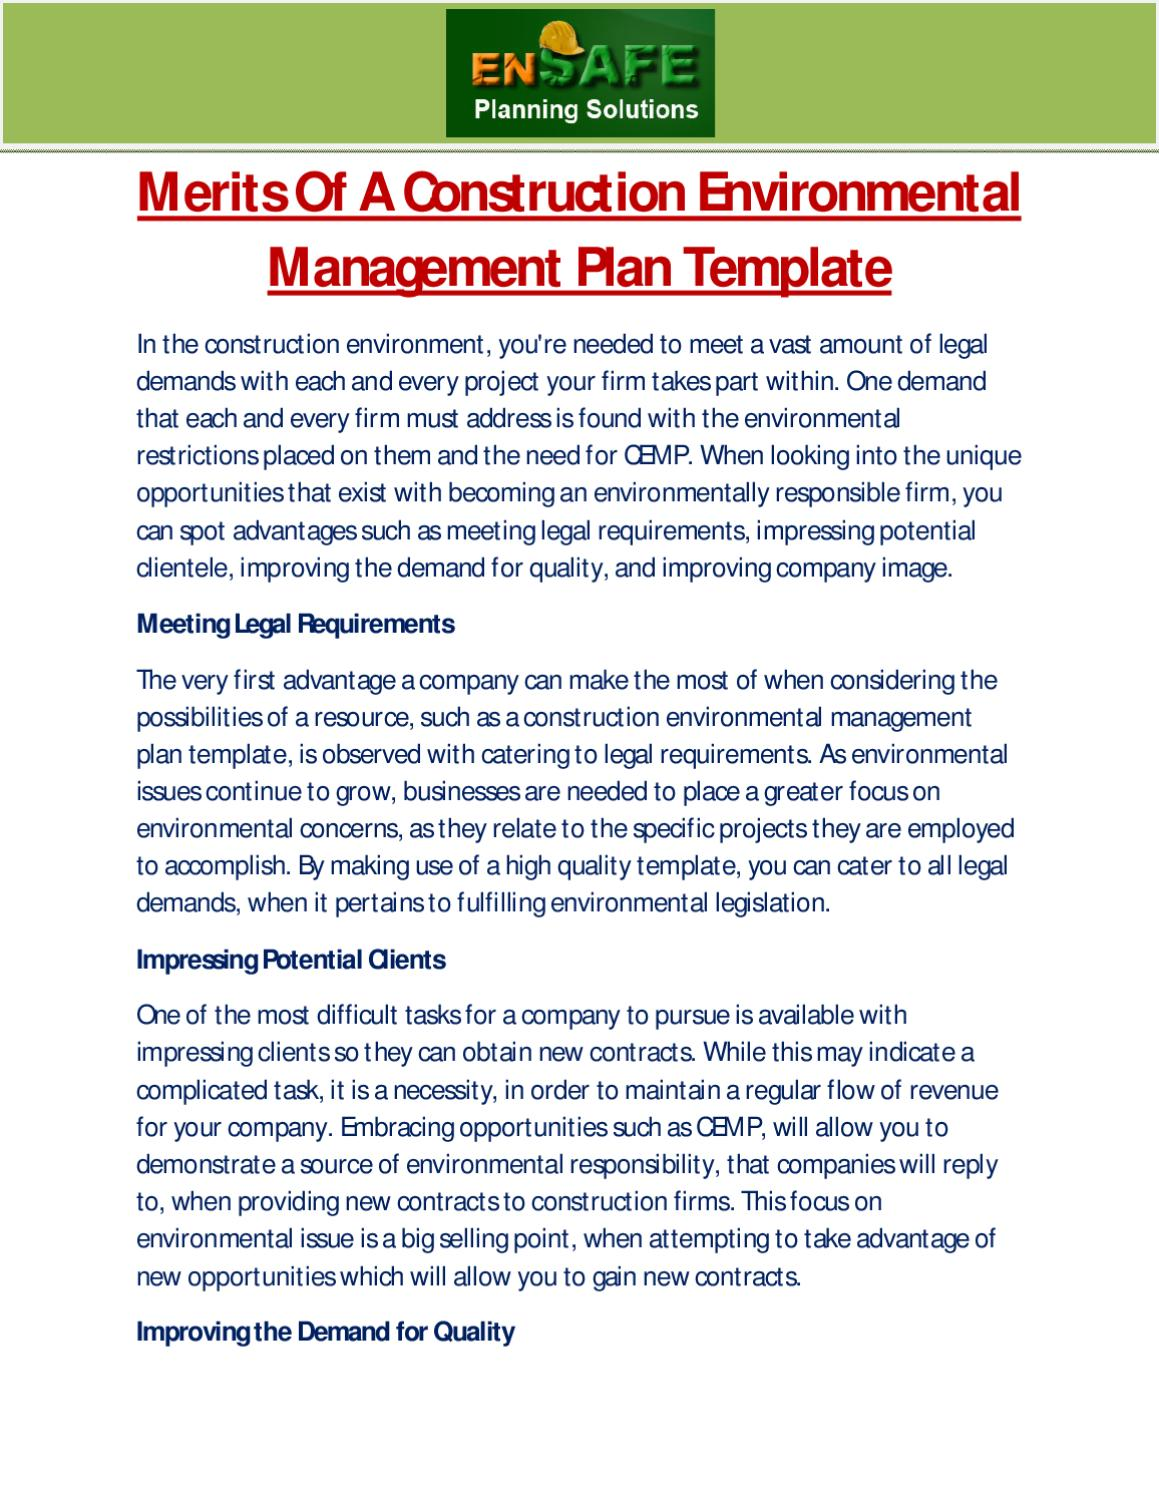 construction environmental management plan template - merits of a construction environmental management plan